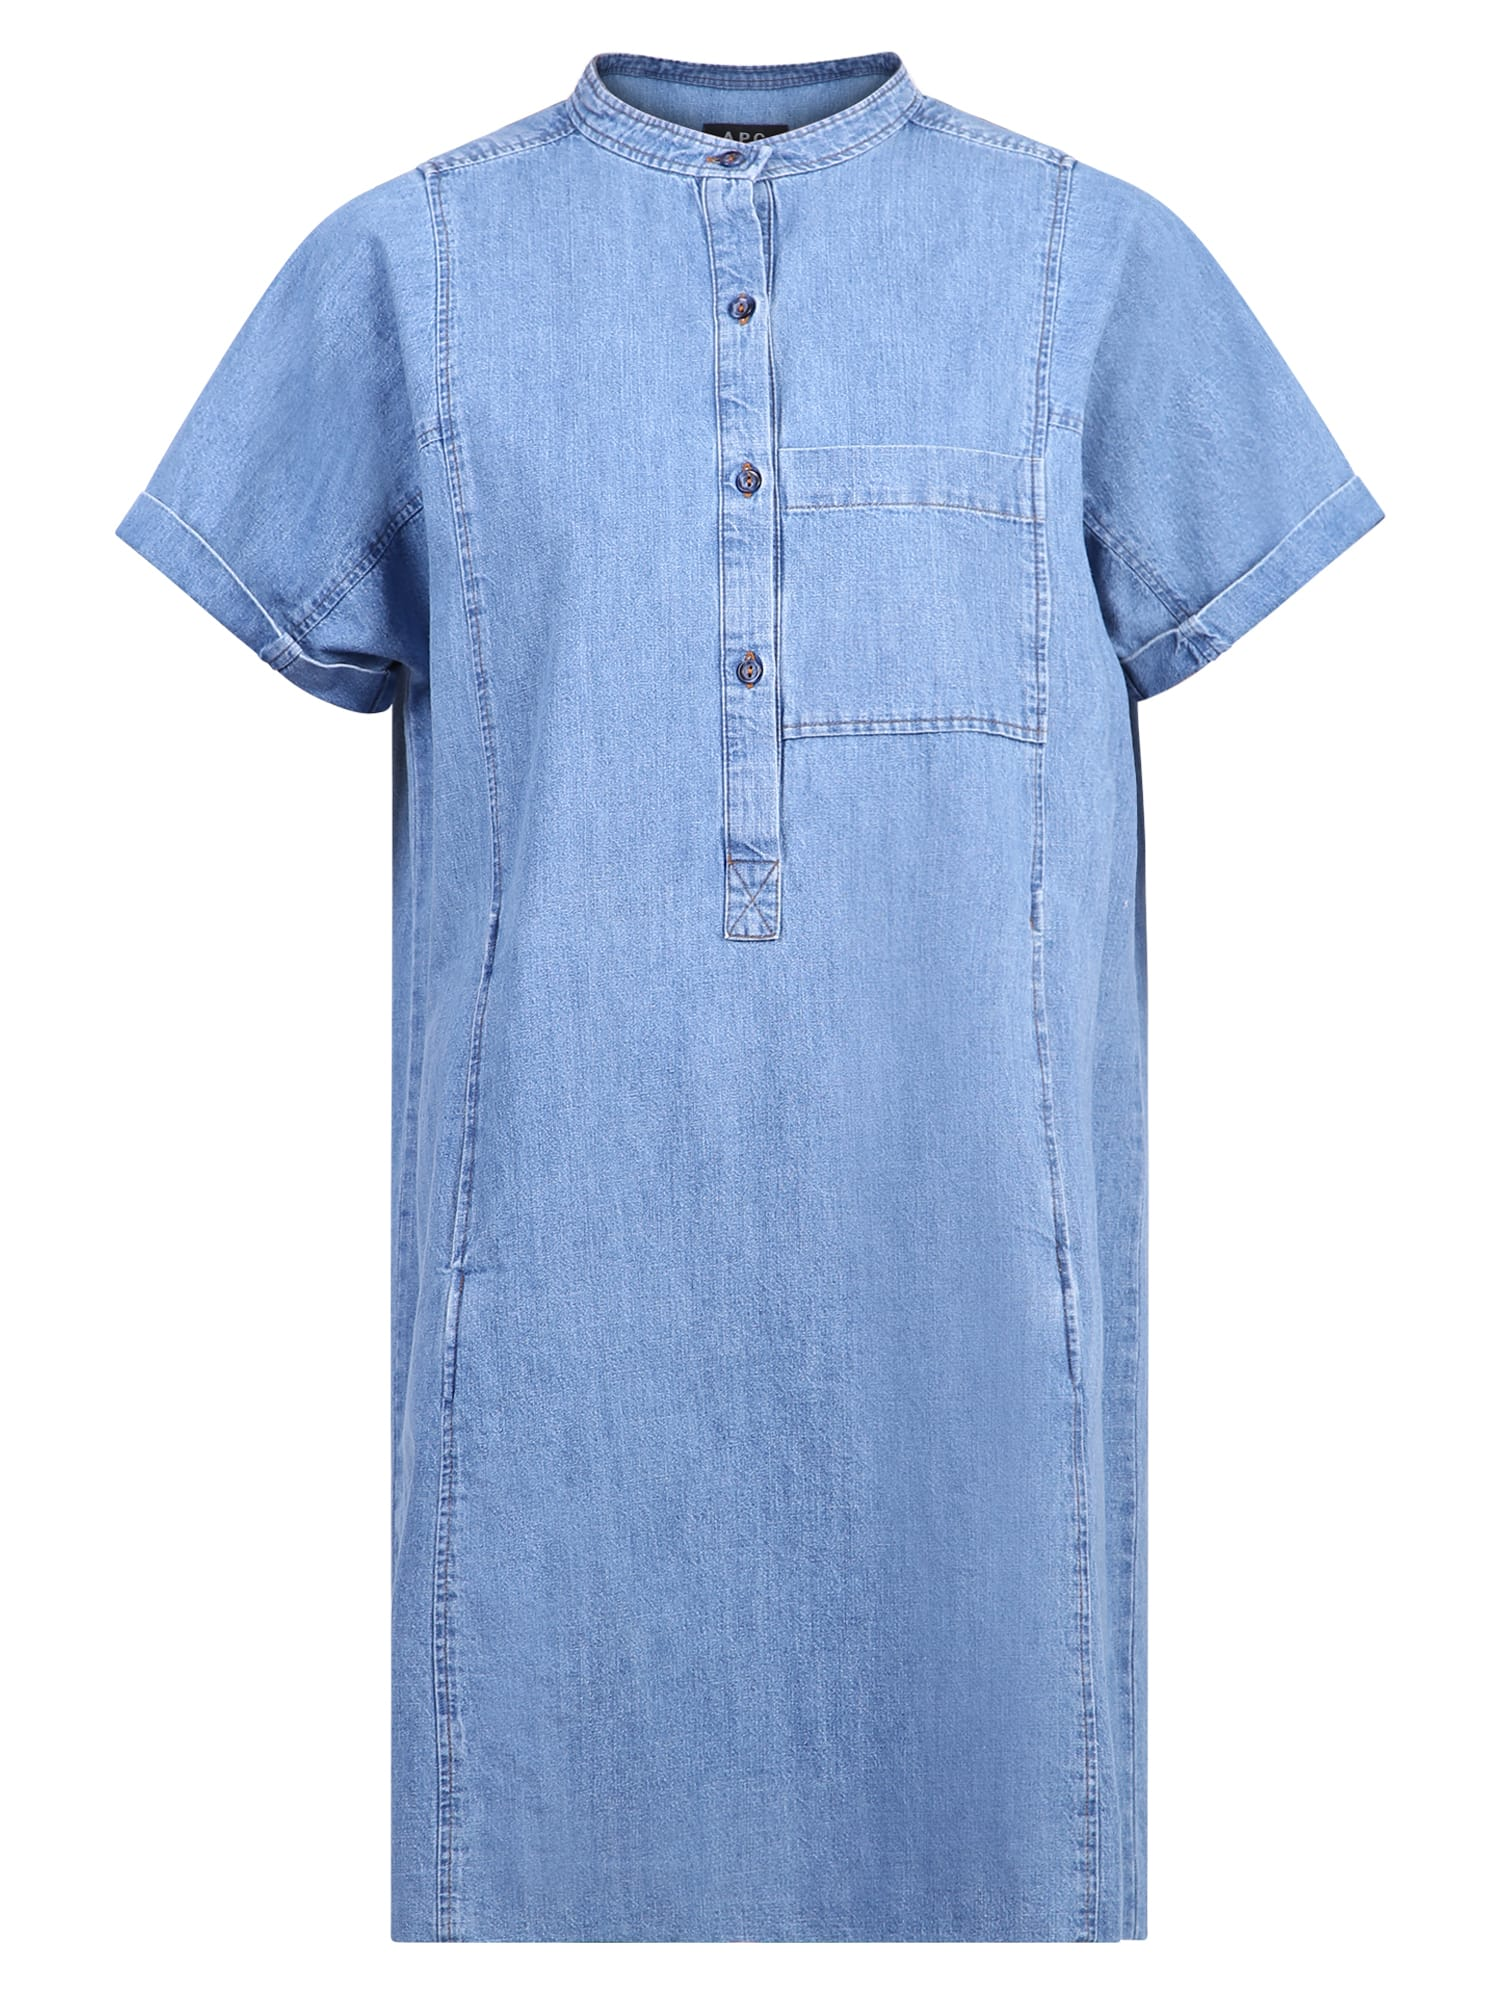 Buy A.P.C. Relaxed Fit Dress online, shop A.P.C. with free shipping